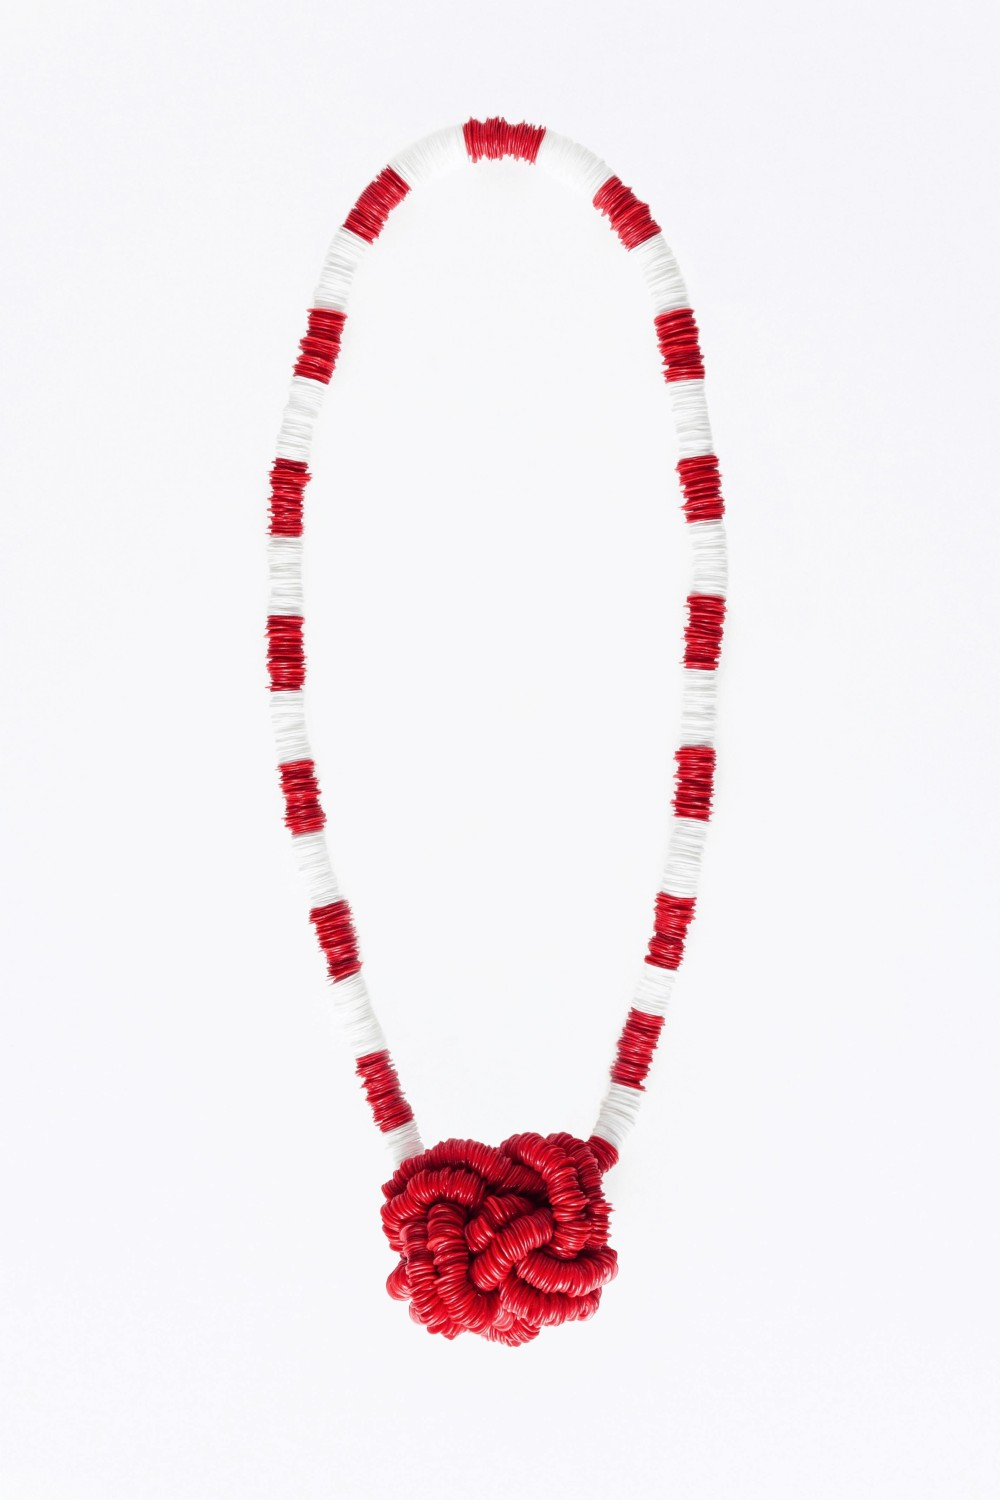 red and whitte plastic necklace